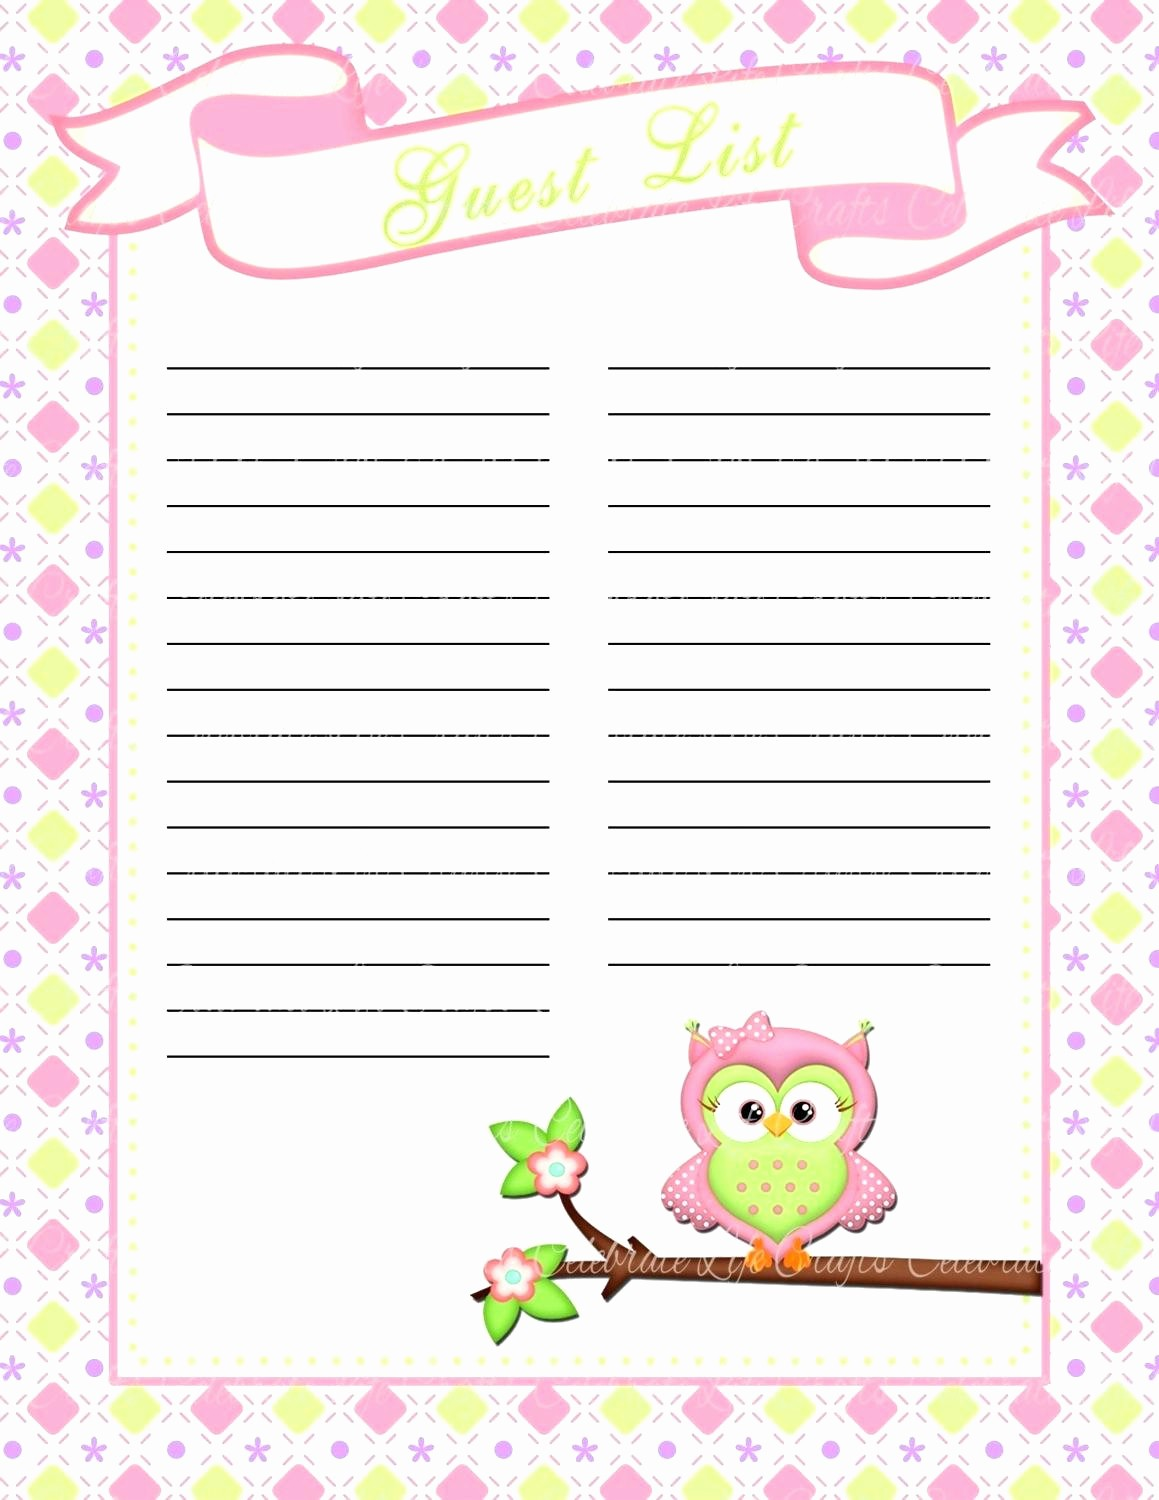 Sweet 16 Guest List Template Fresh Template Guestlist Template Planning Printable Wedding